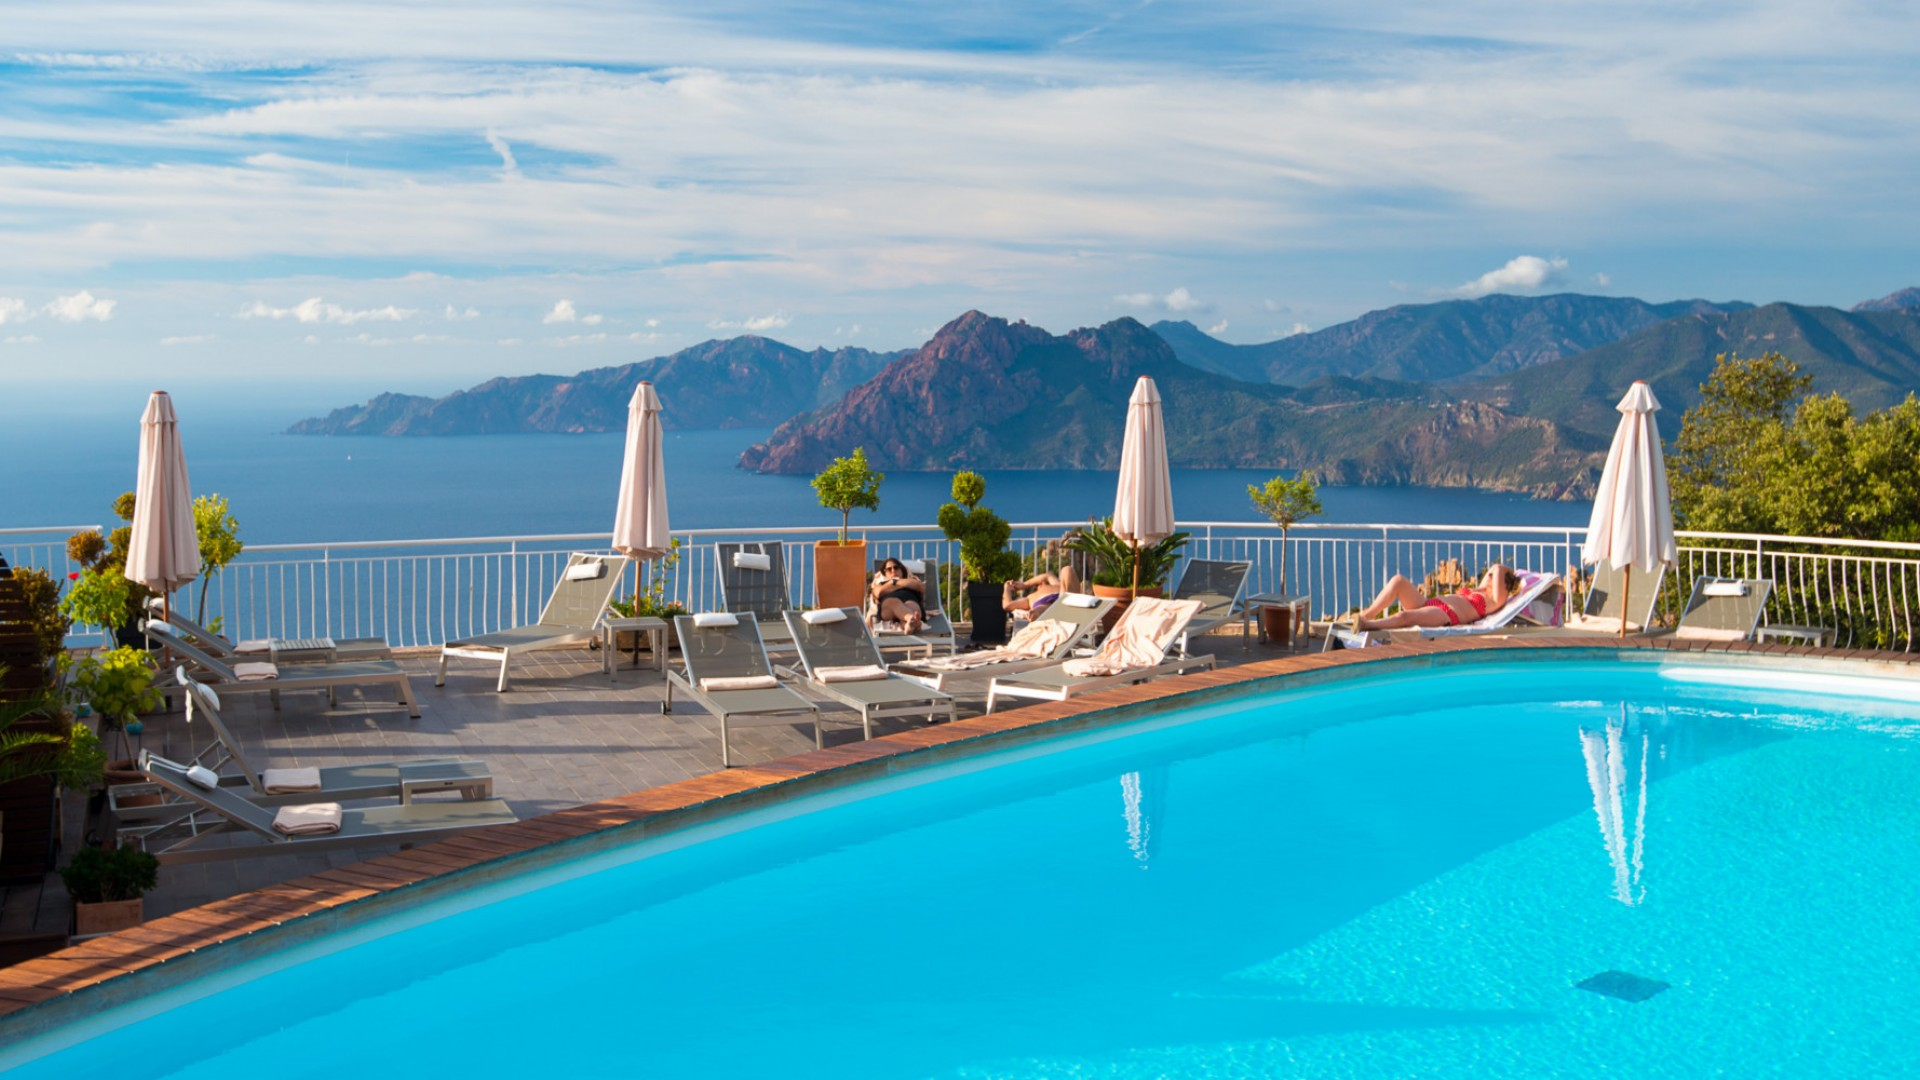 luxury hotel pool in Corsica France